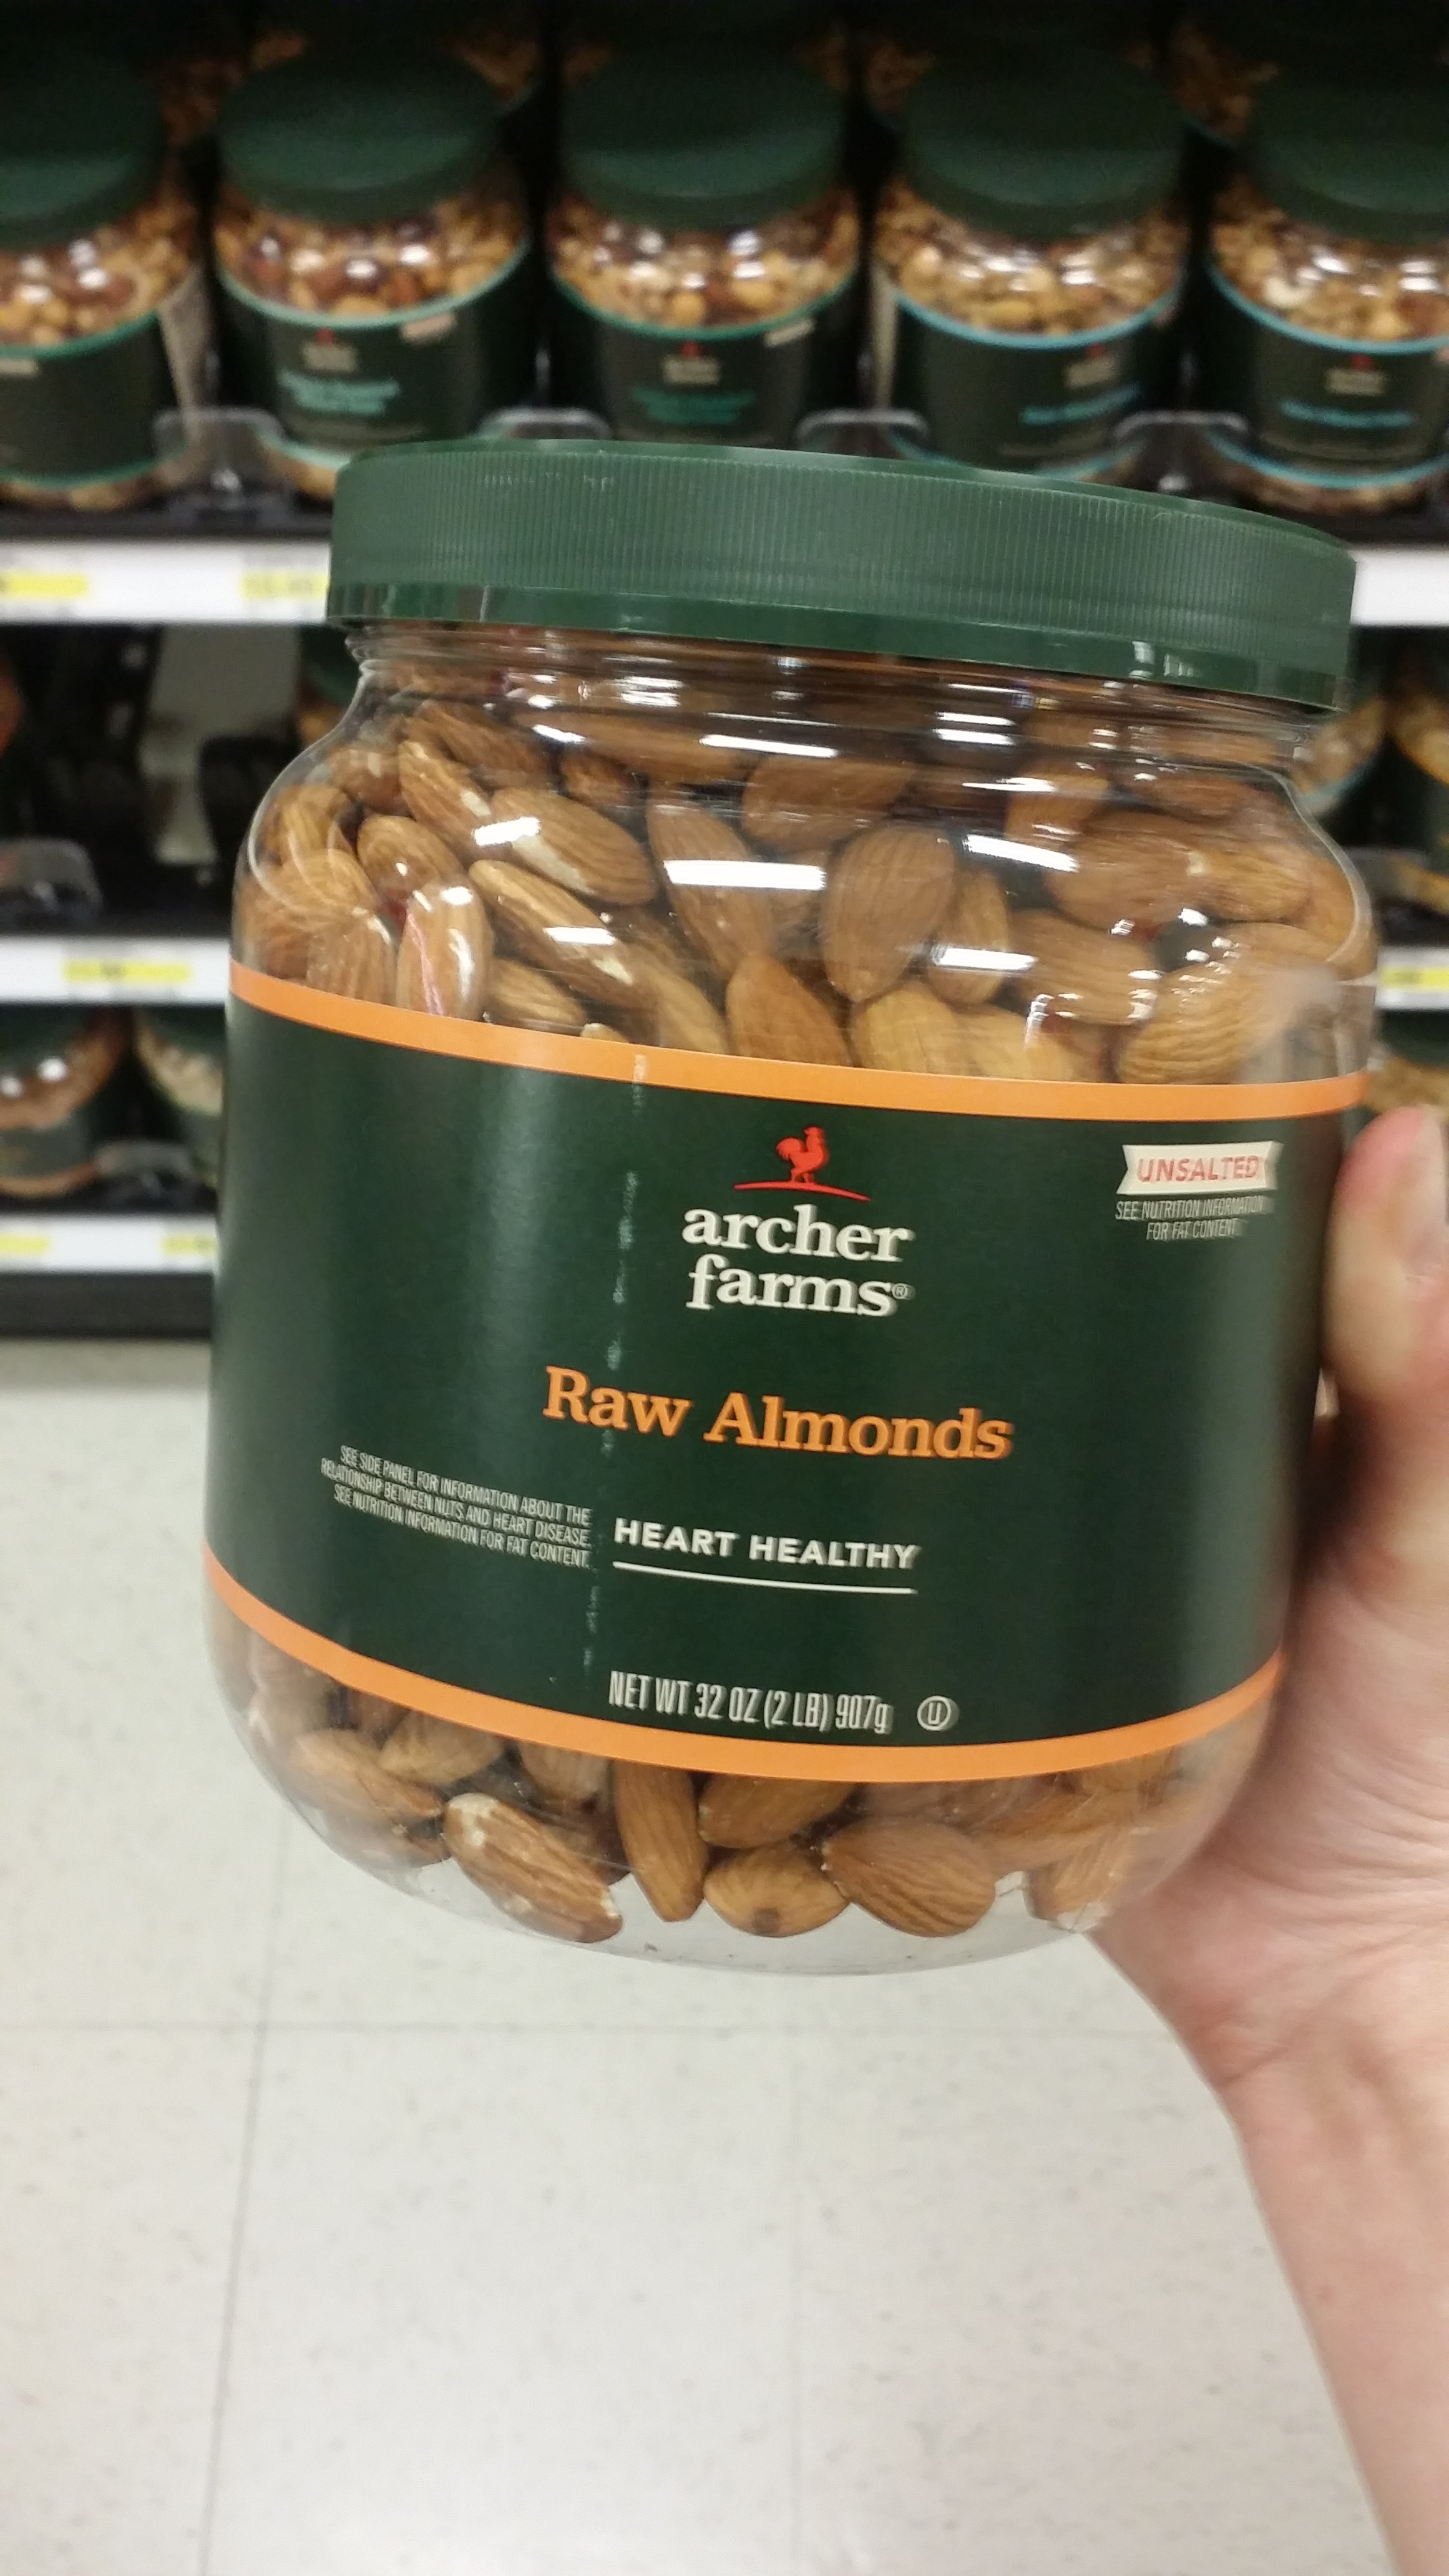 The giant jug of almonds I found. They come in plastic number one, but it would be a great jar to reuse especially in the jar for holding all sorts of nuts and bolts.